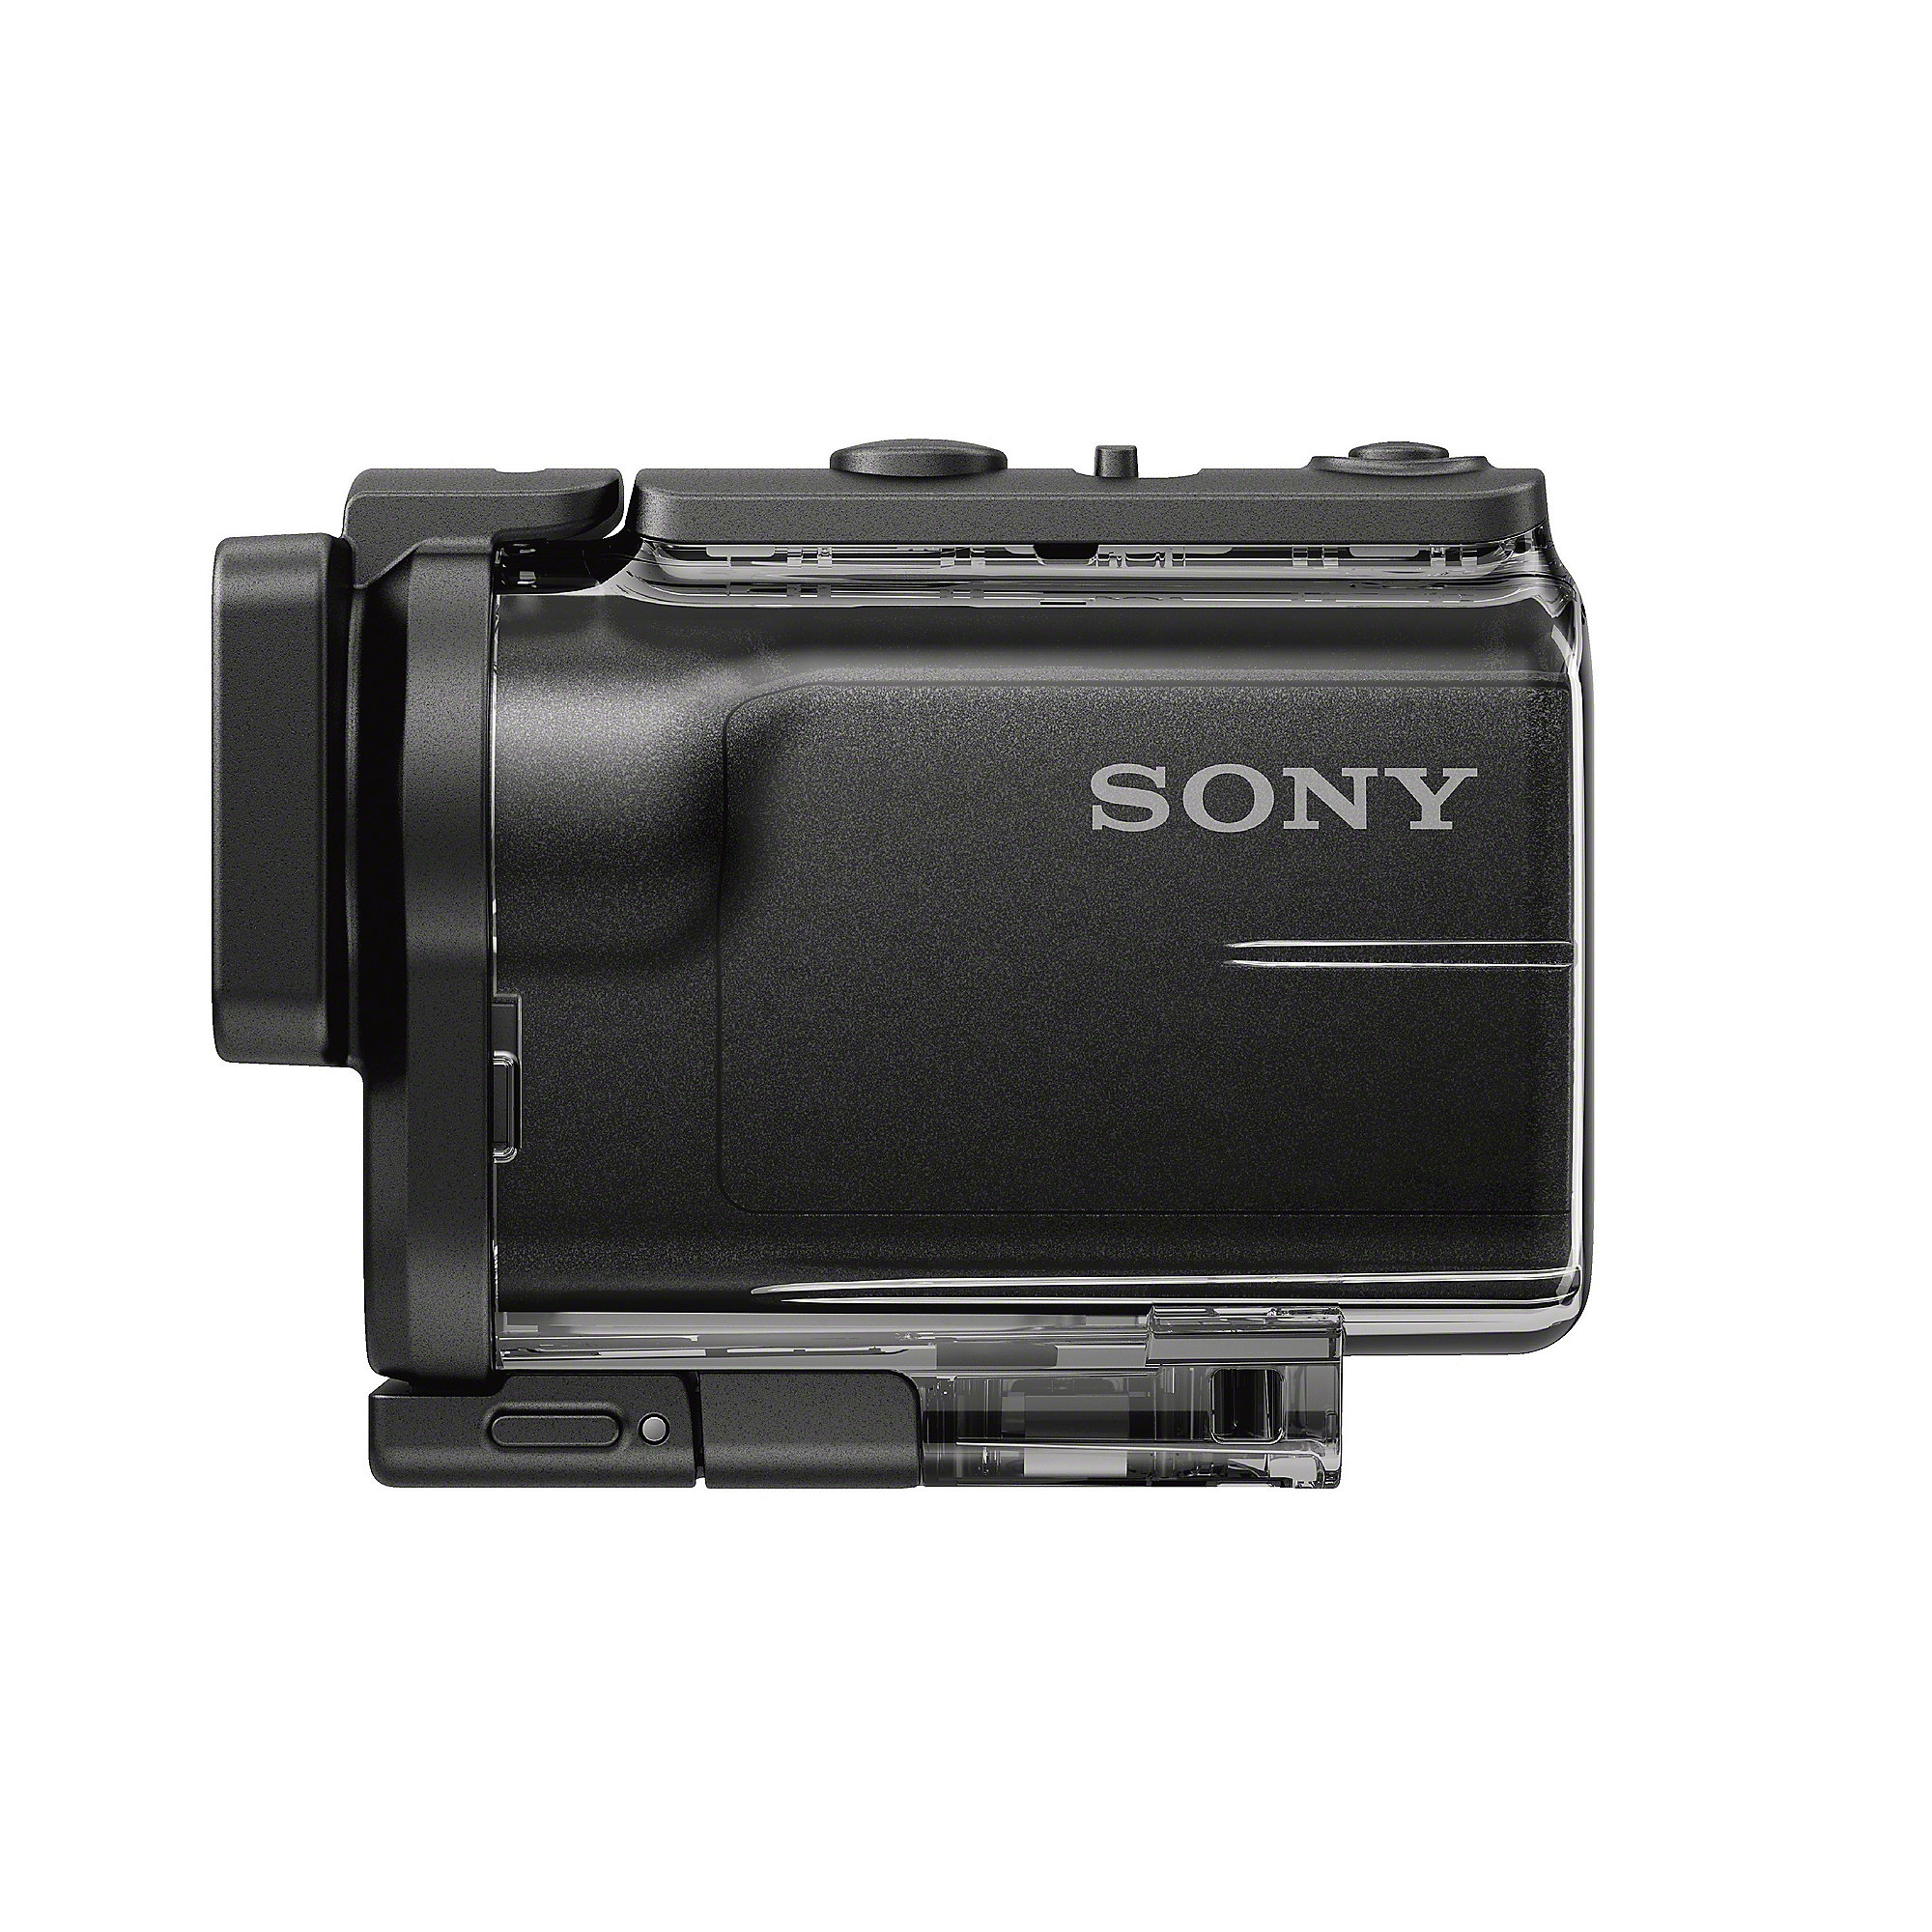 Sony HDR-AS50 Action Camcorder